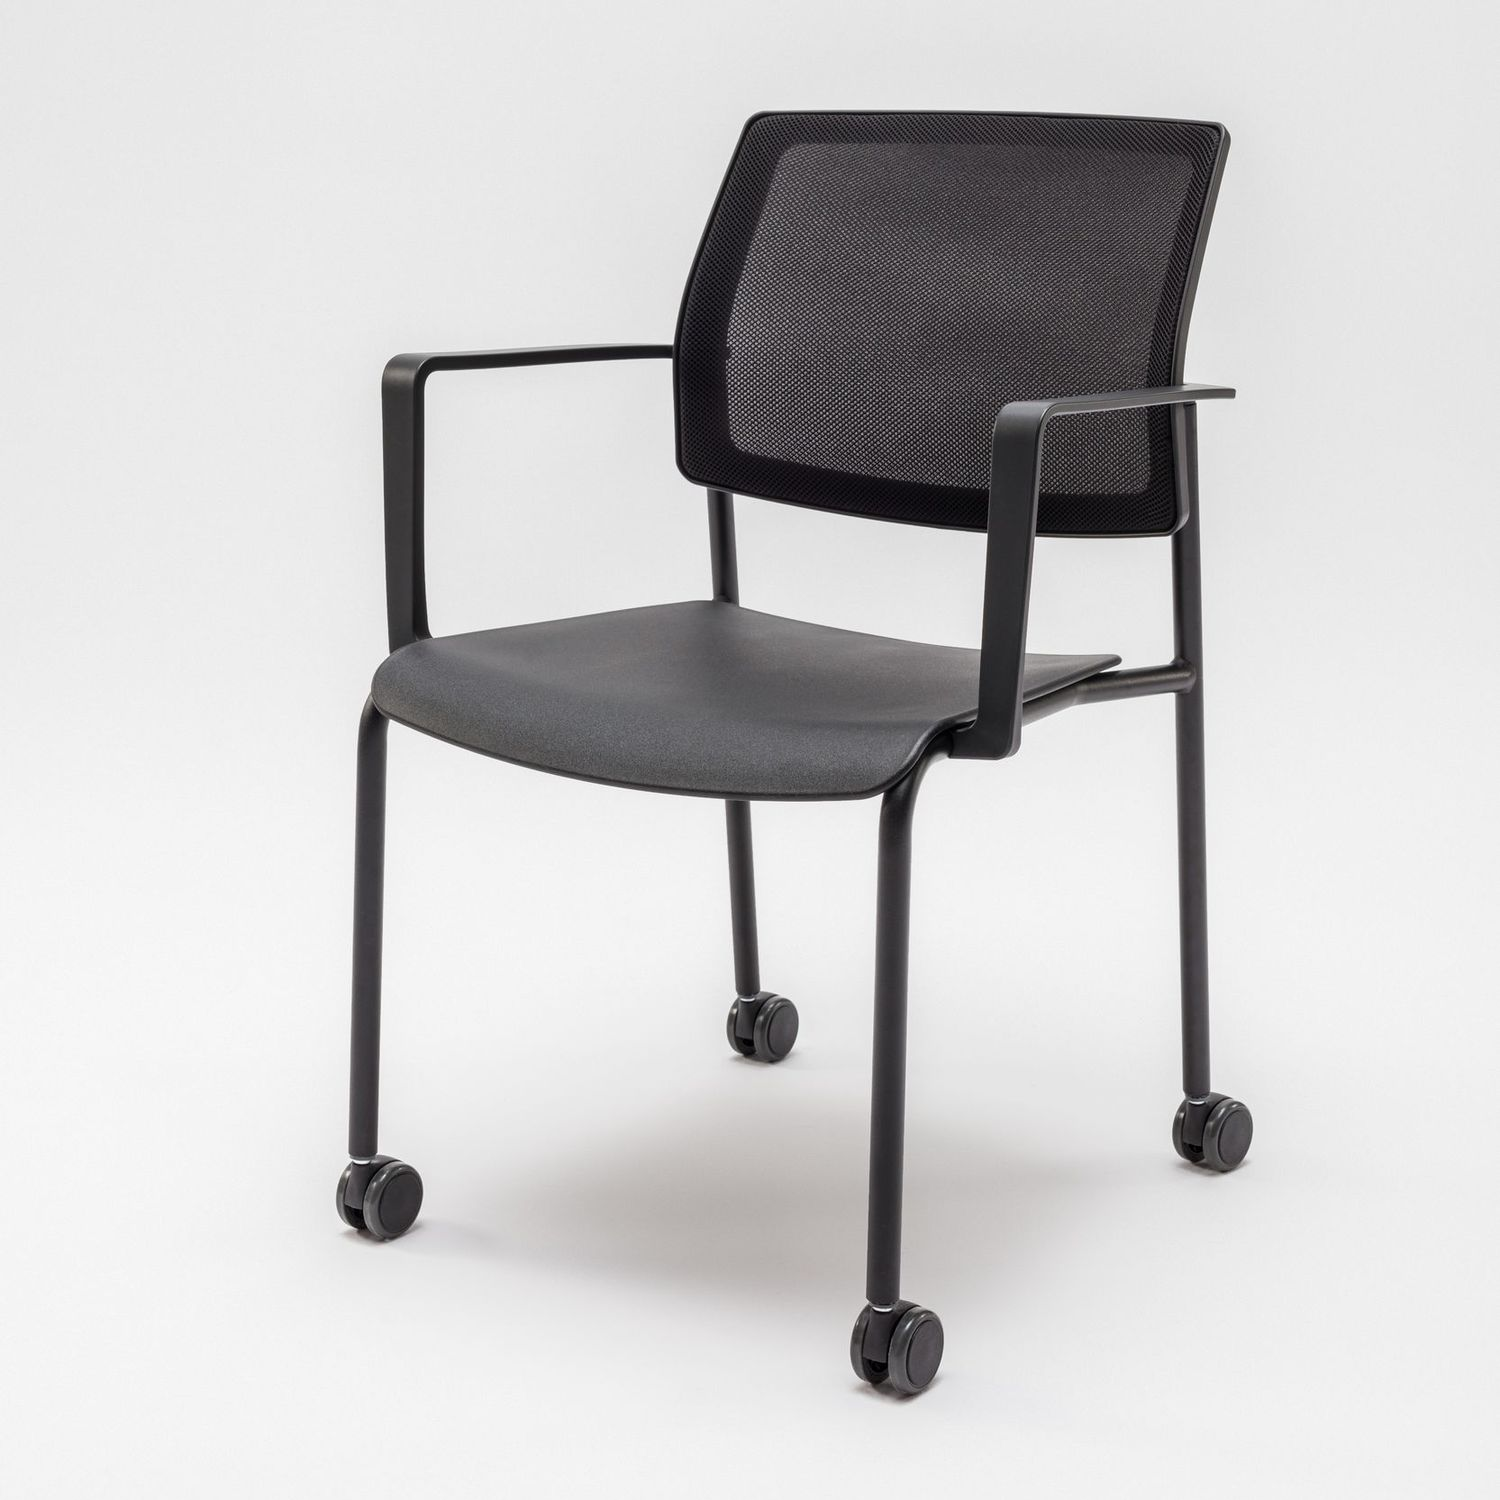 Conference Chair With Armrests / Upholstered / Ergonomic / On Casters    GAYA K